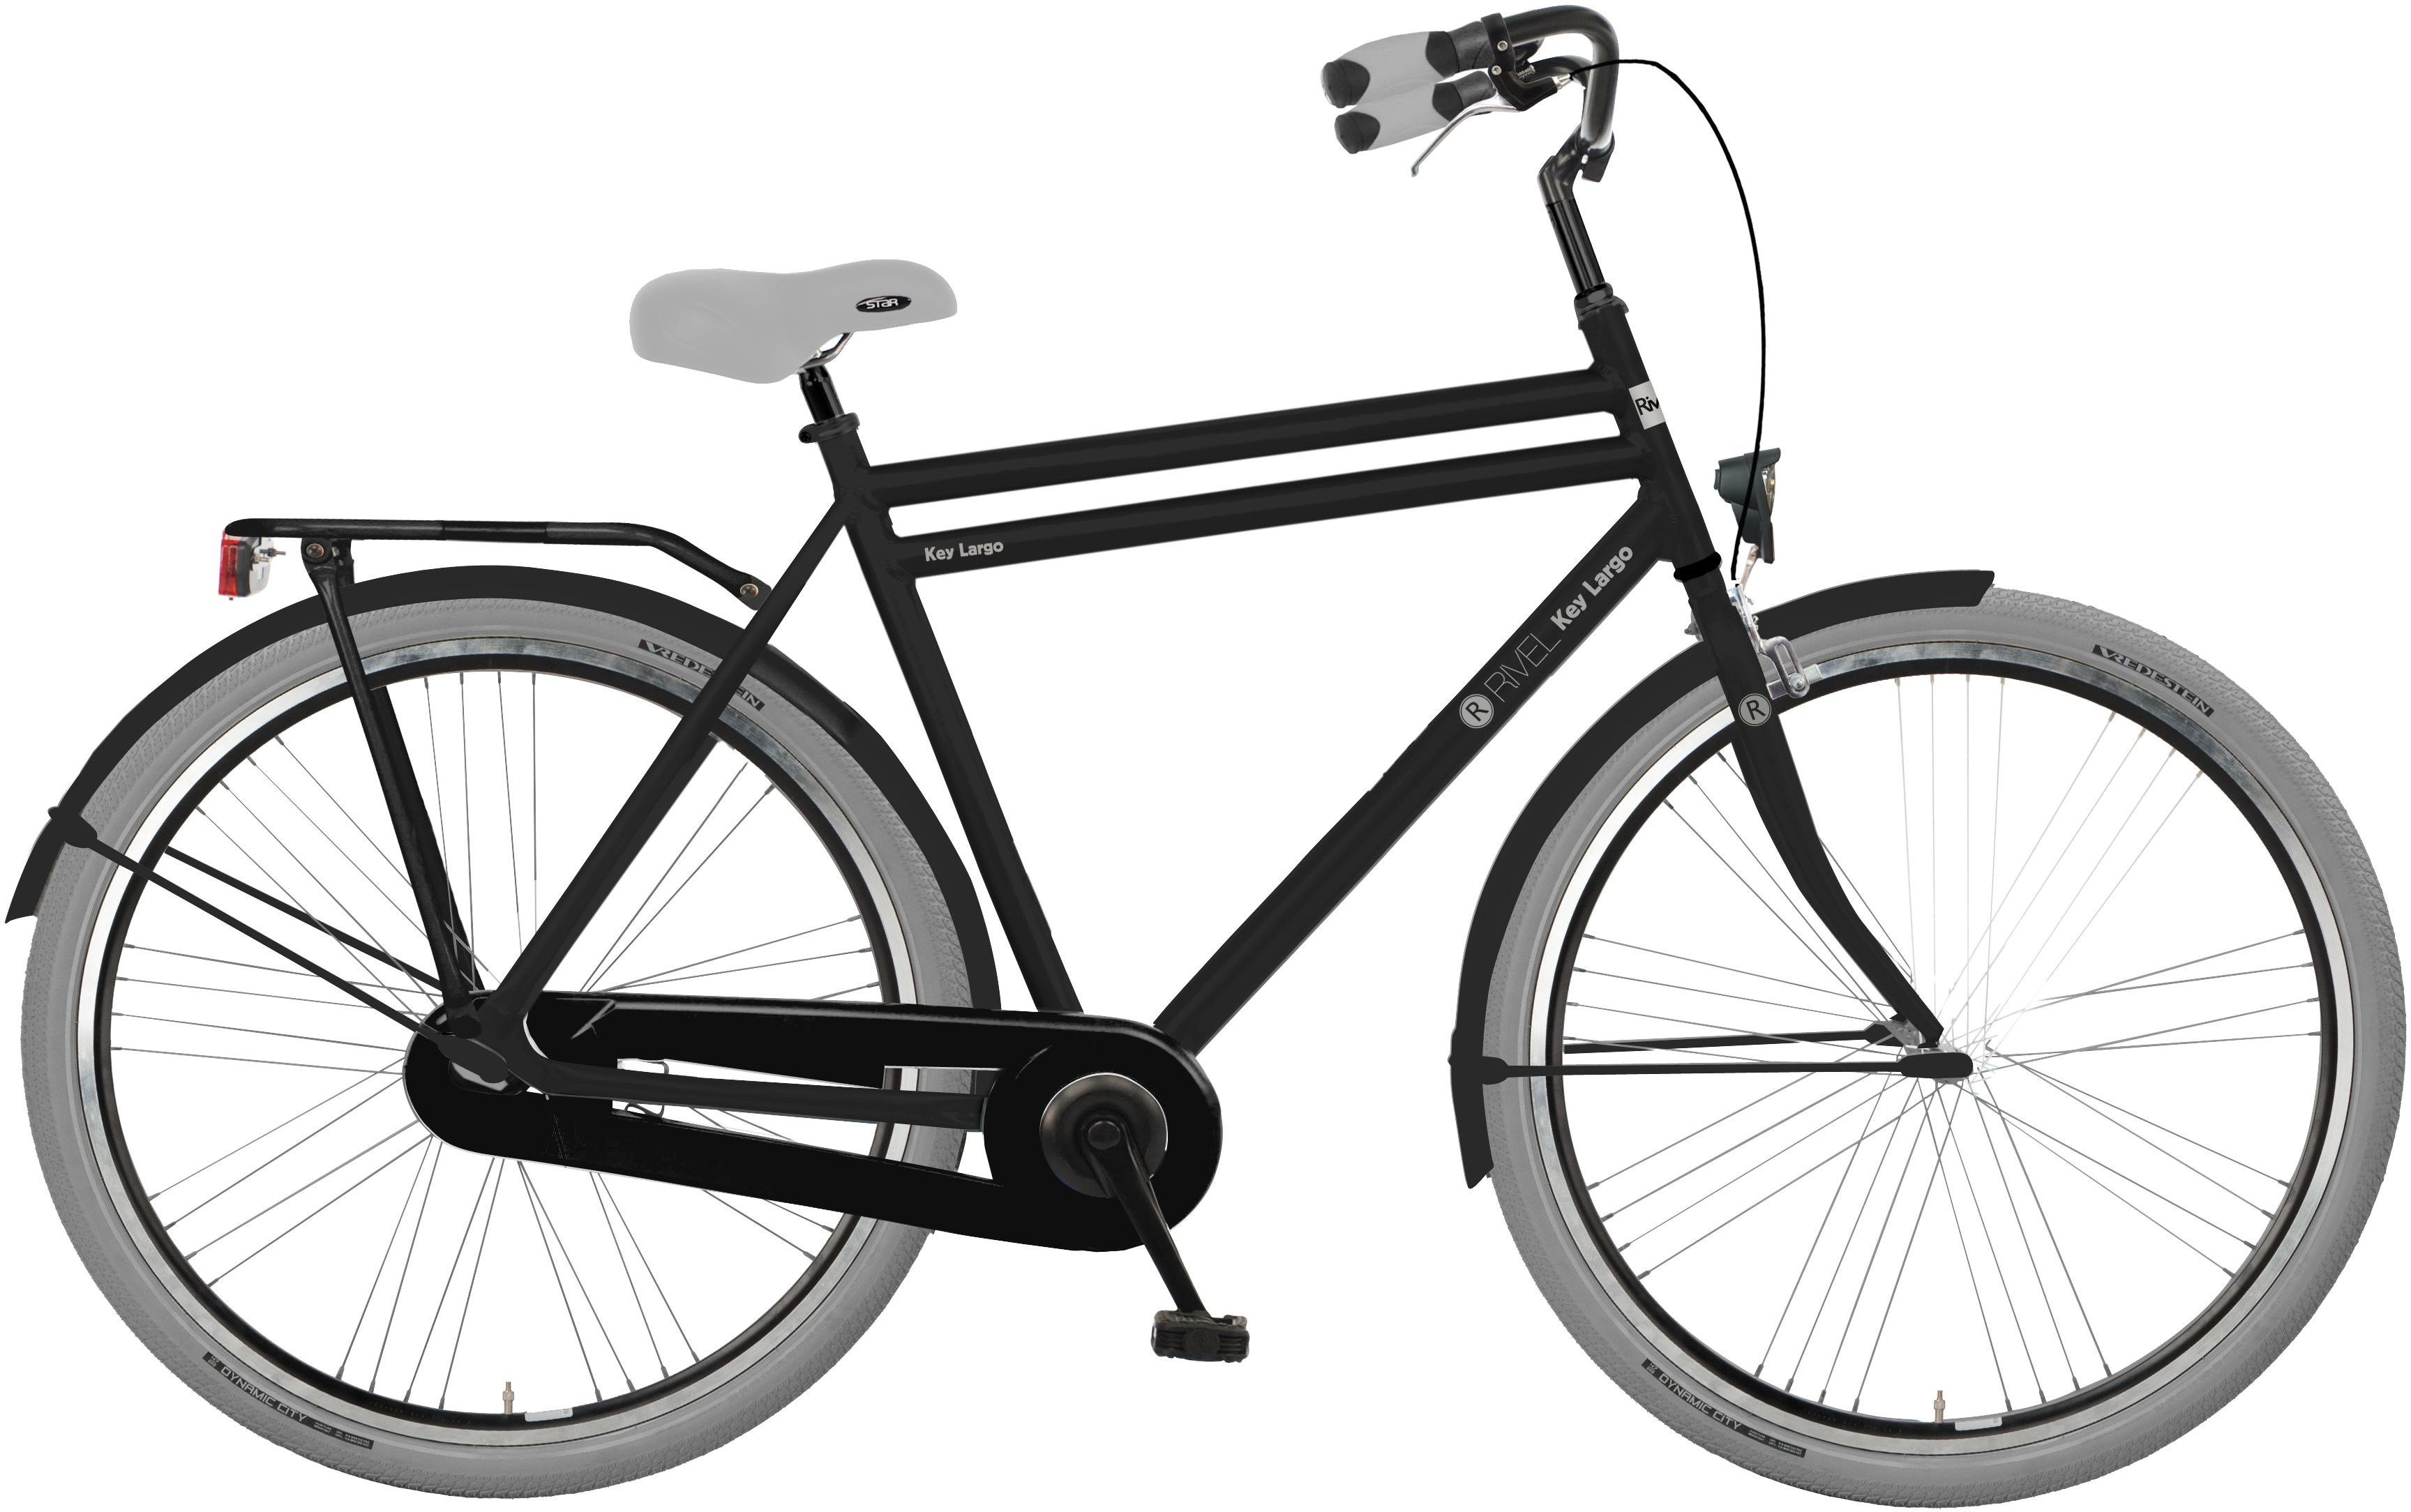 Rivel Herren Citybike, 28 Zoll, Singlespeed, Rücktritt, »Key Largo«